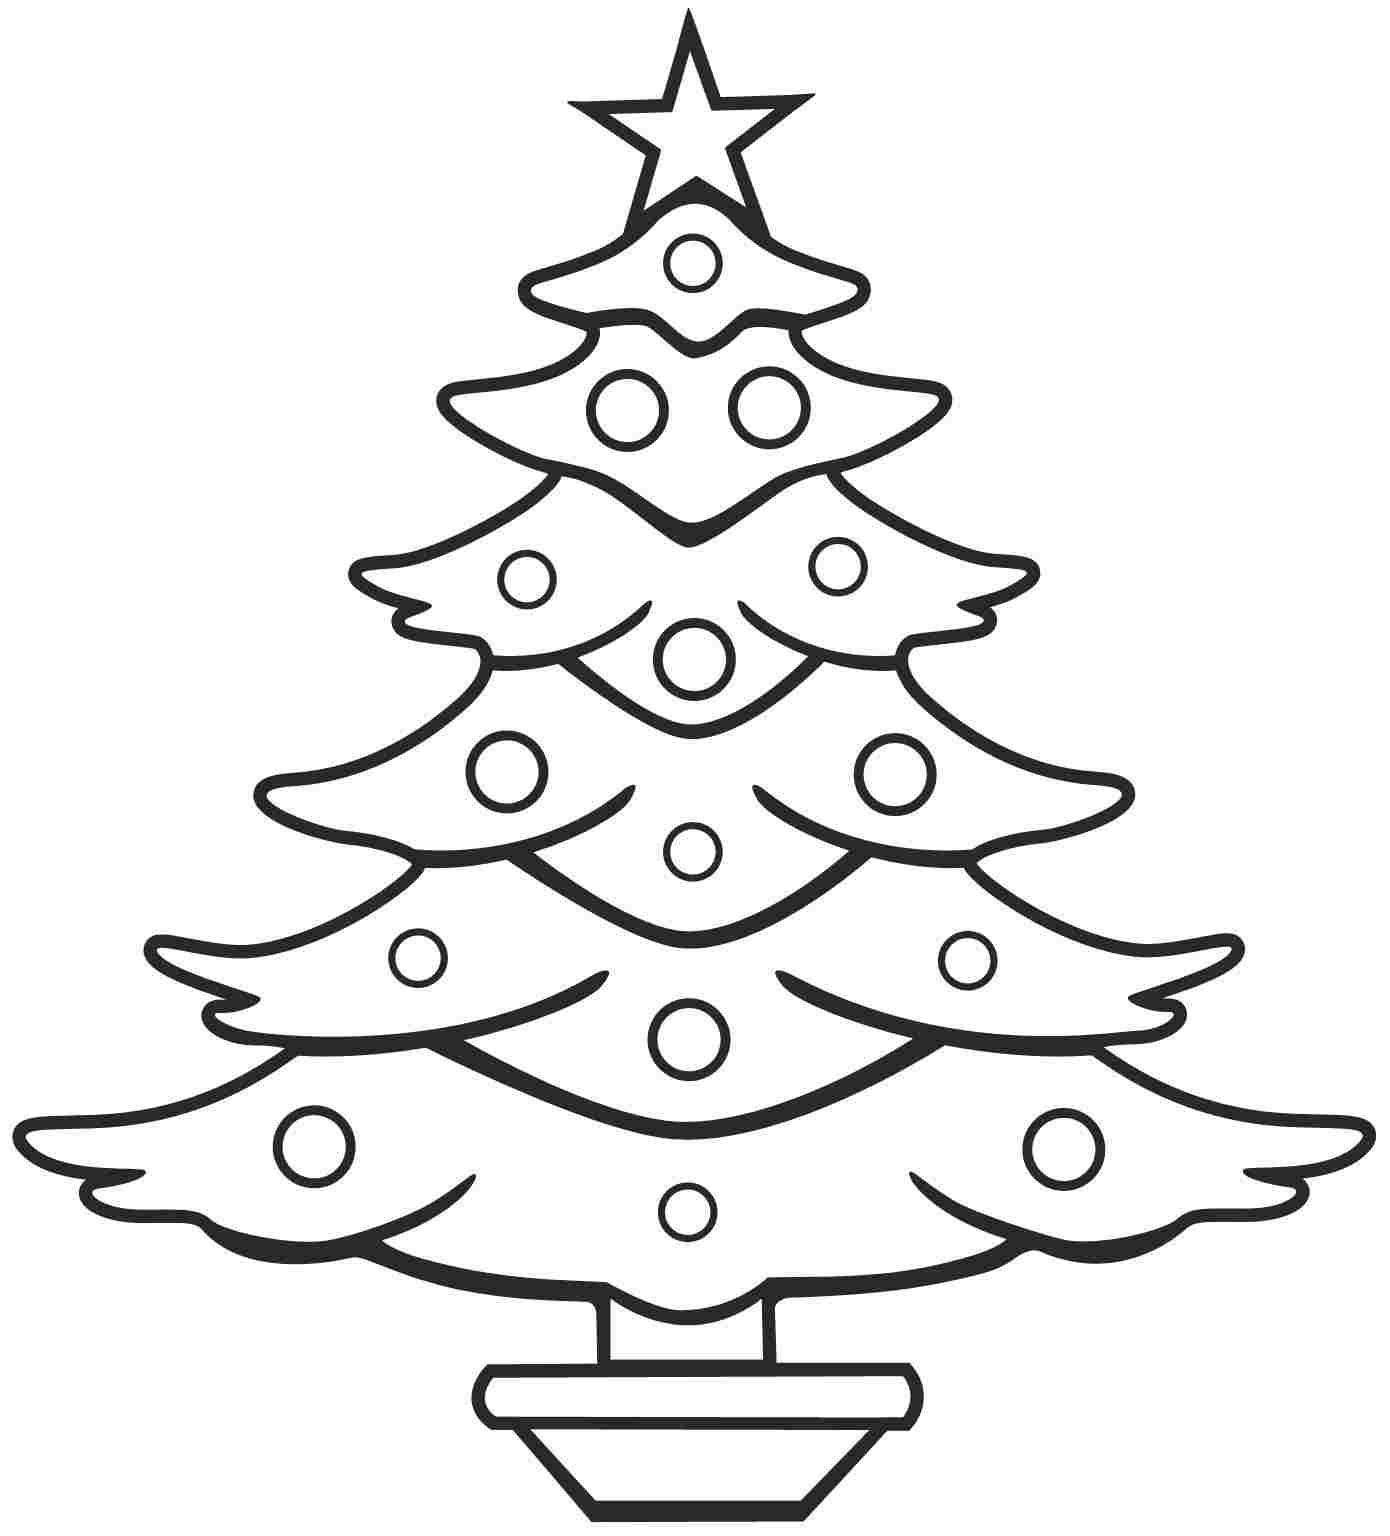 Free Colouring Pages Christmas Tree For Little Kids #5412. | Árvores ...